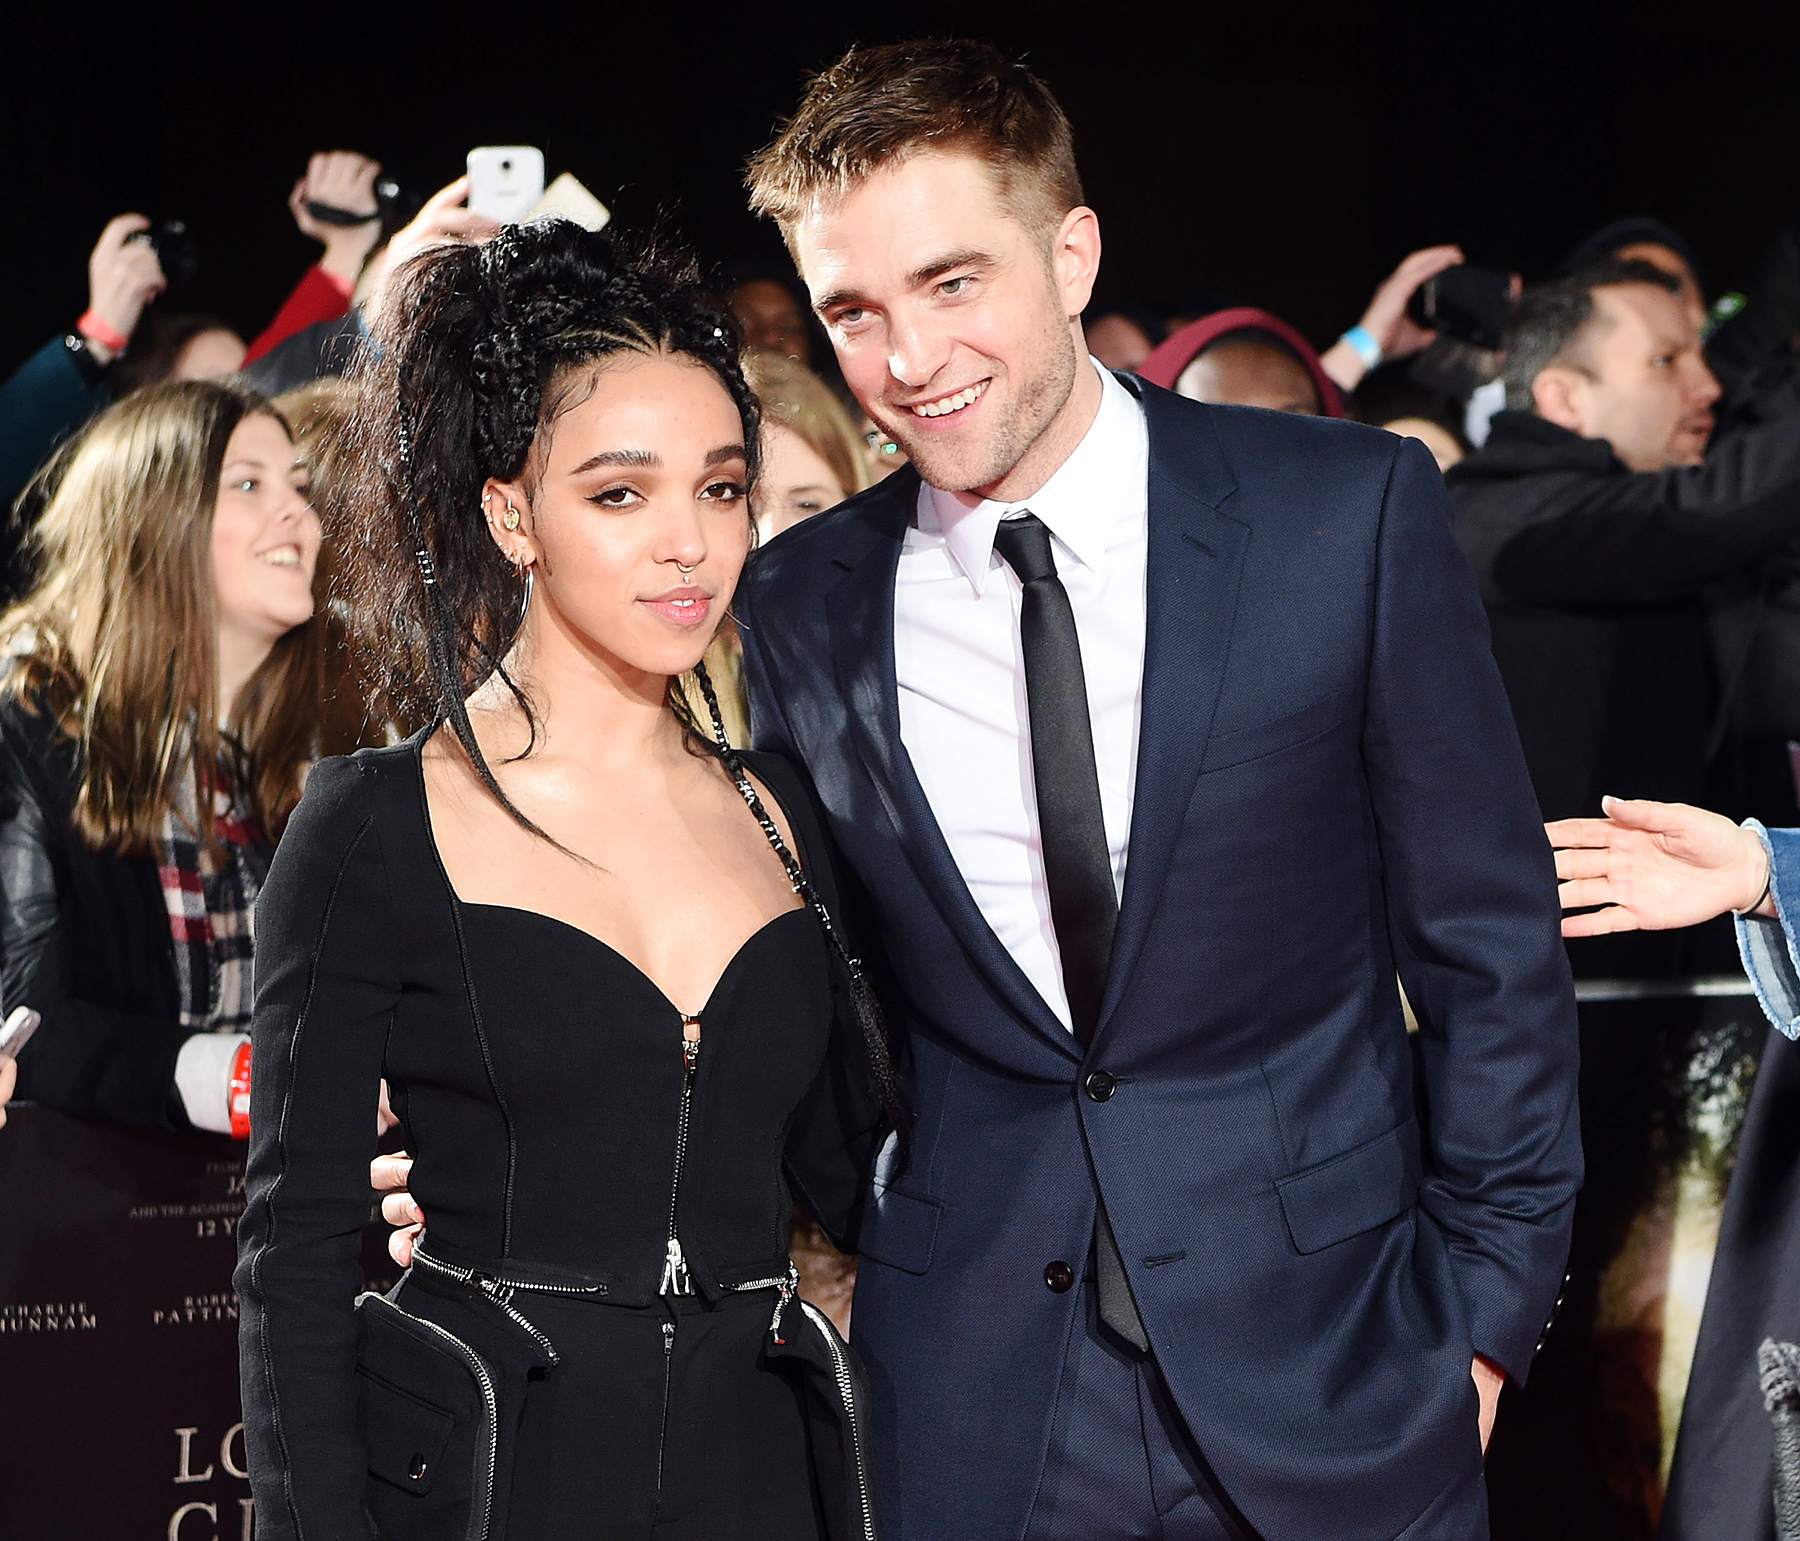 Robert Pattinson Spotted With Mystery Blonde After FKA ... Robert Pattinson And Fka Twigs